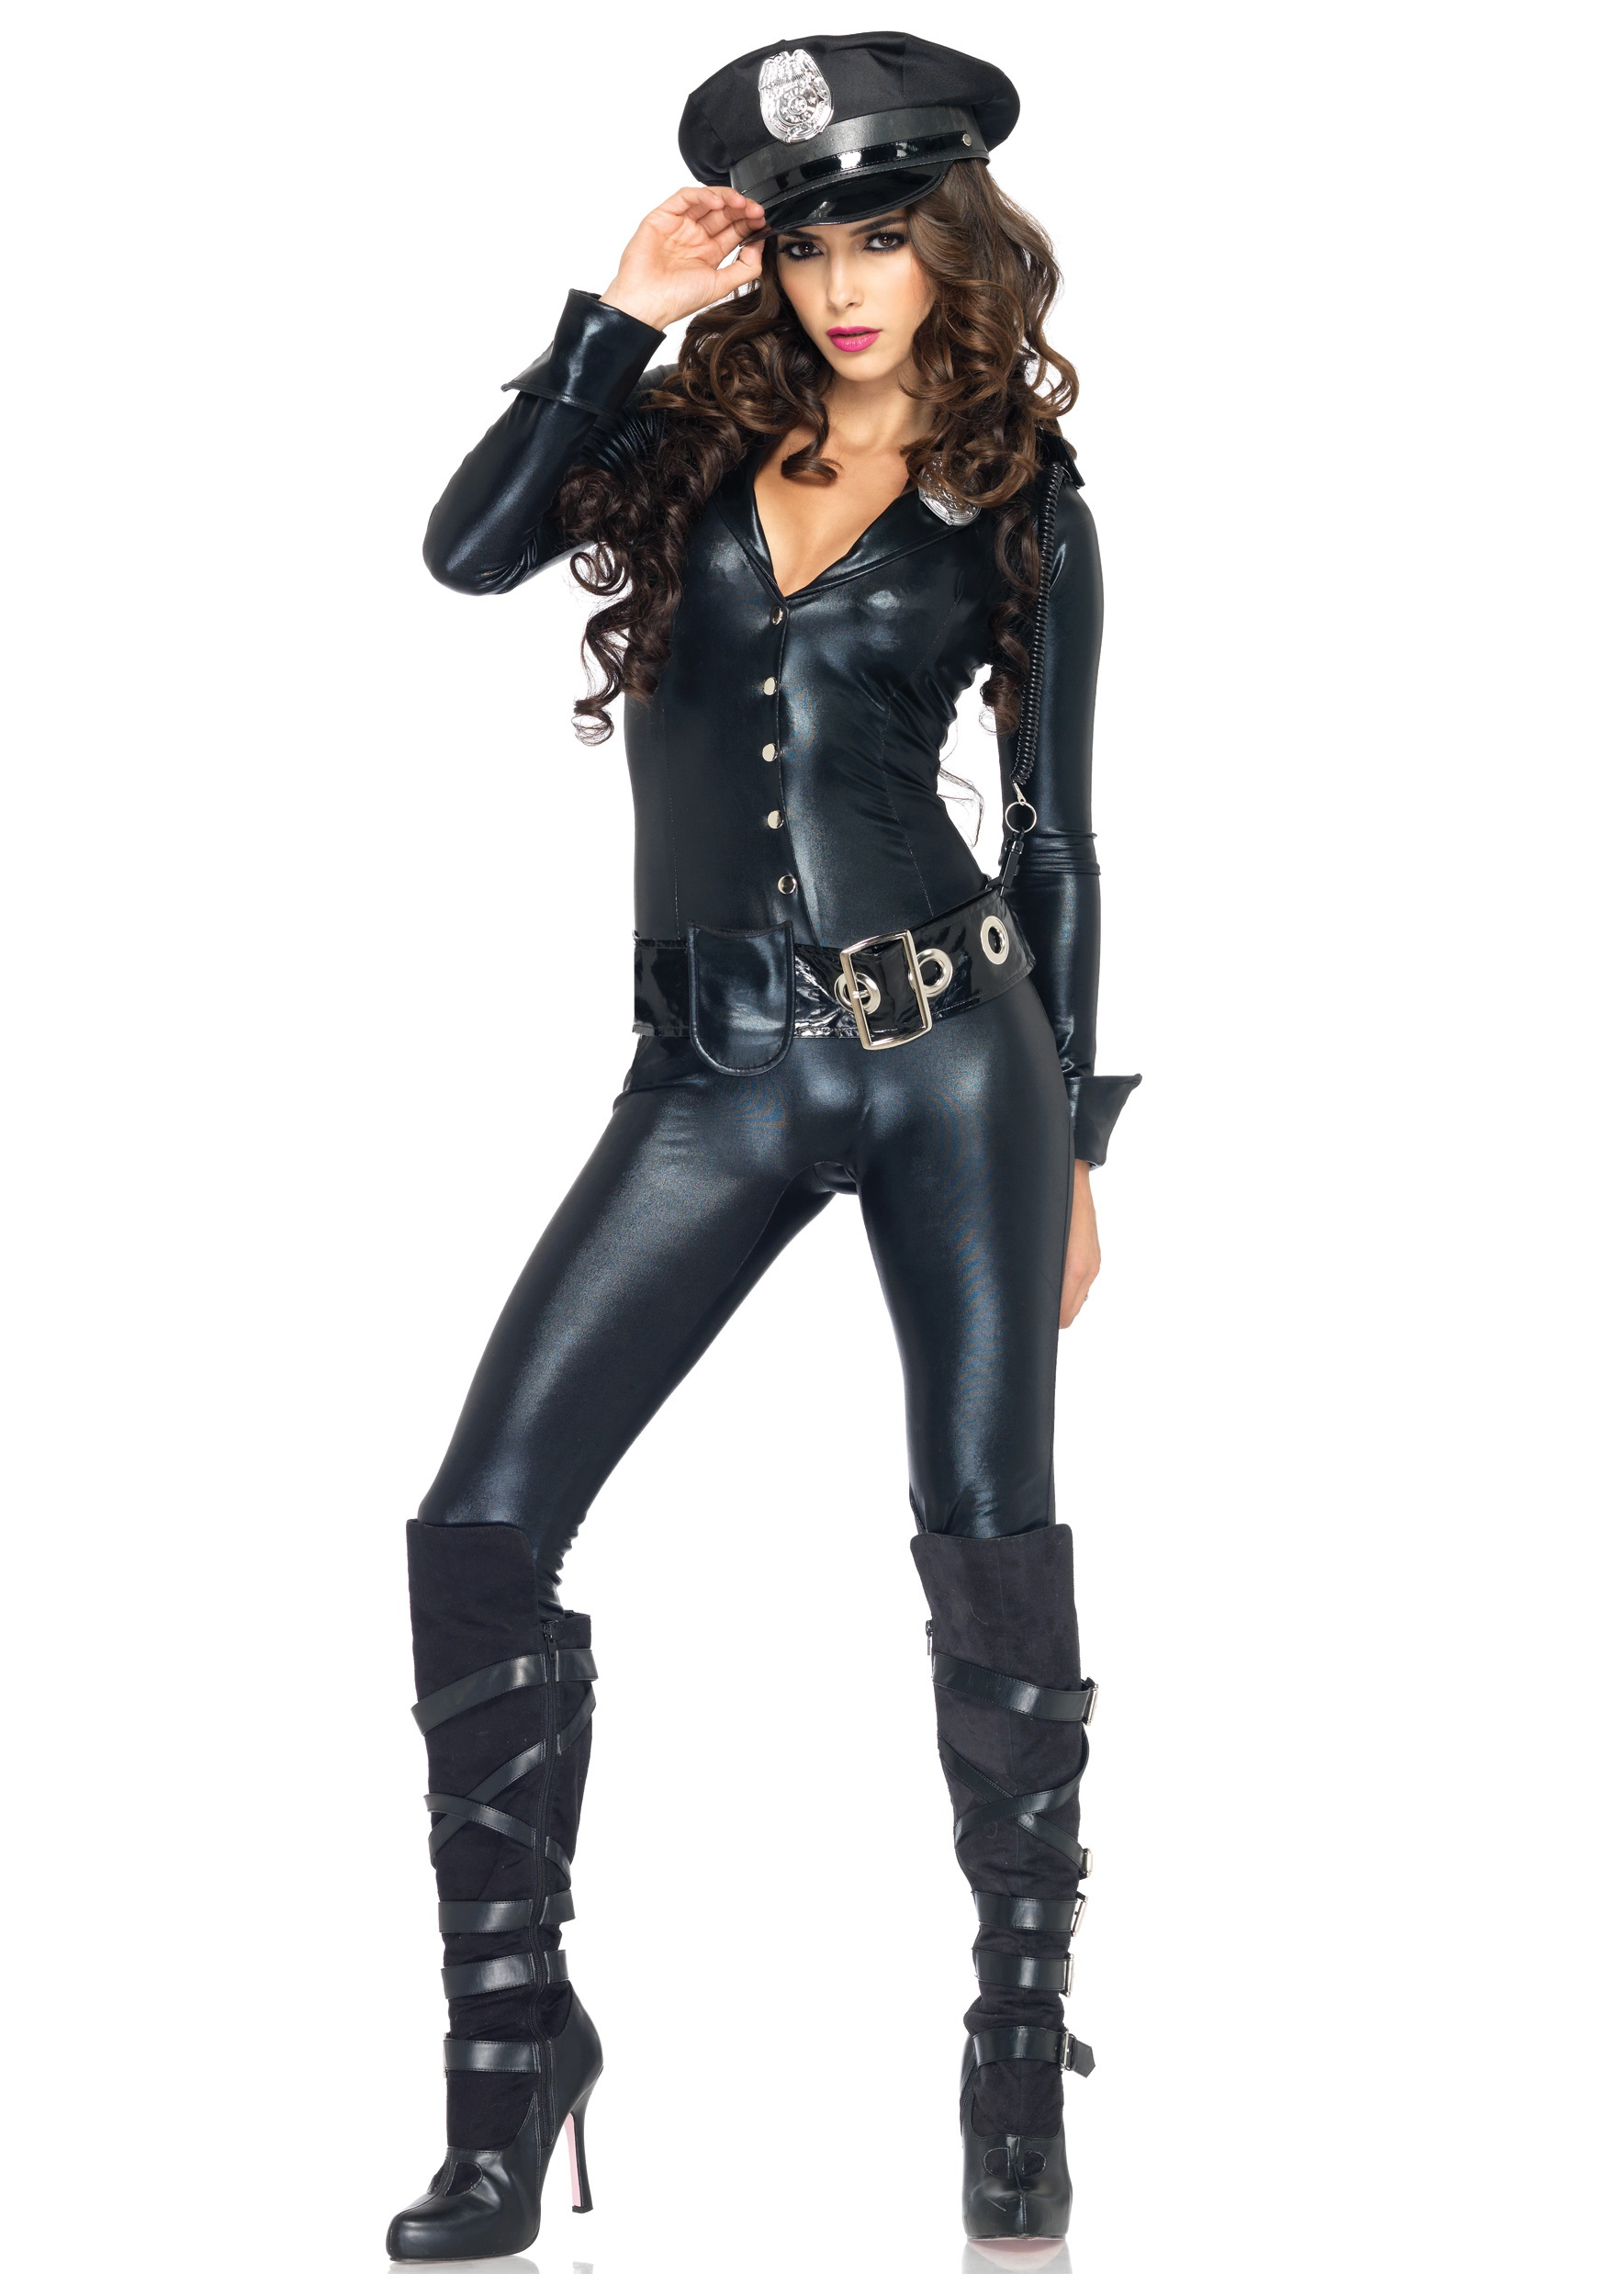 Adult cop costume hottest girl